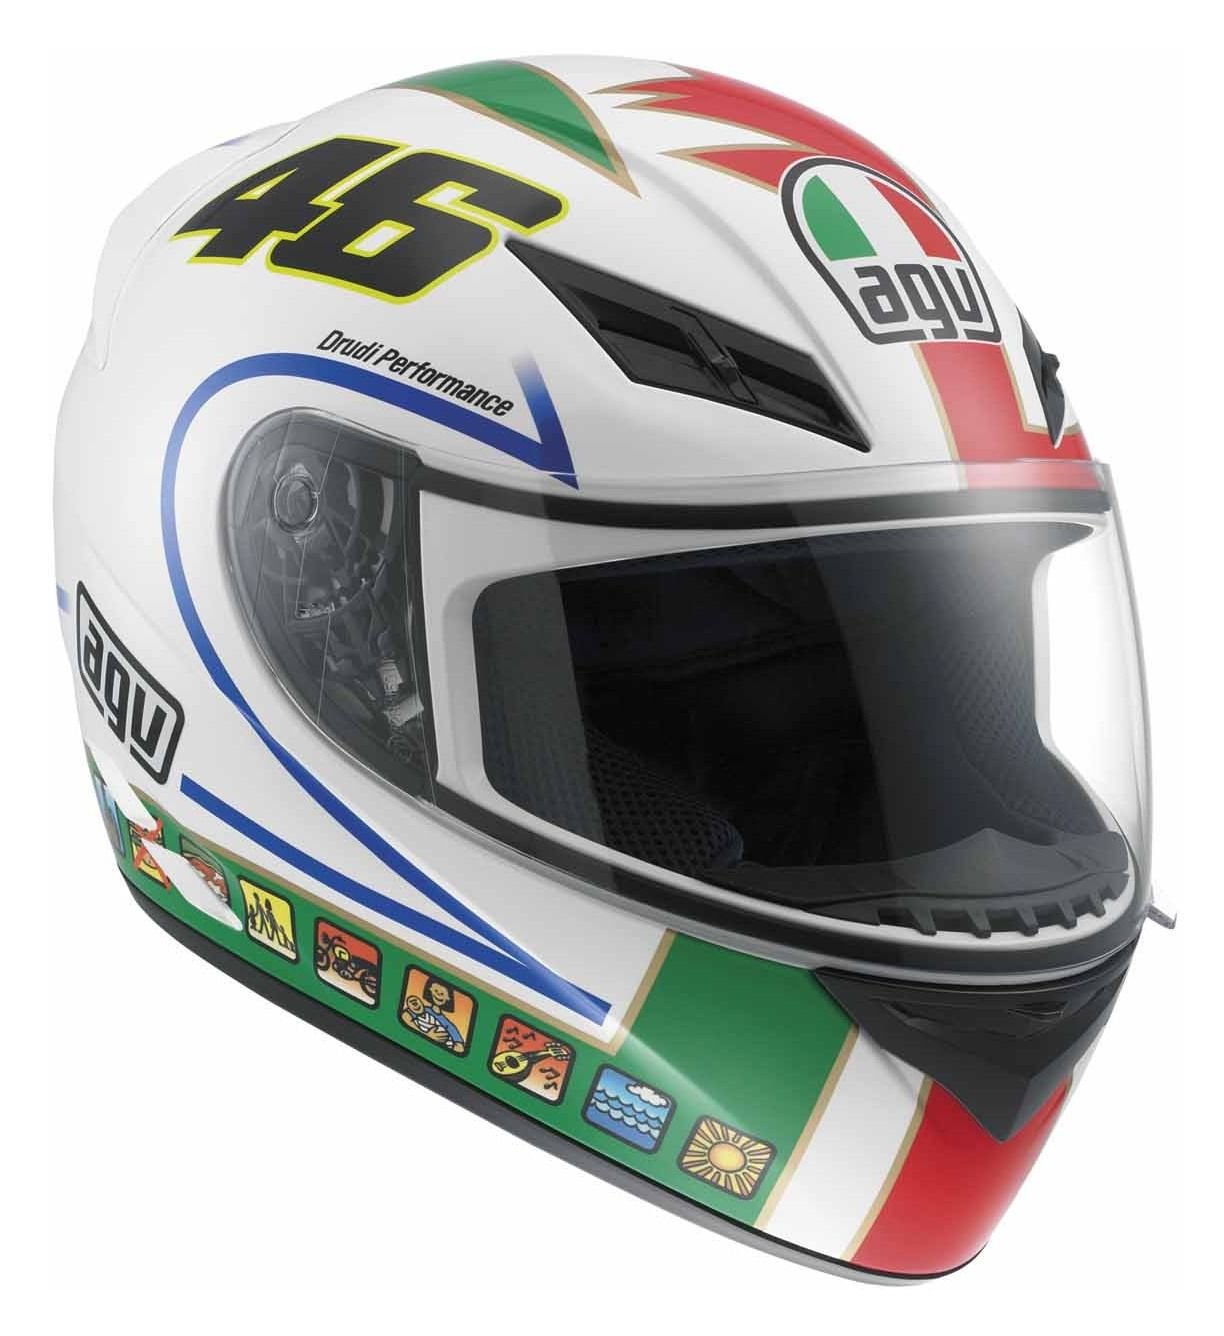 agv k3 rossi icon helmet revzilla. Black Bedroom Furniture Sets. Home Design Ideas